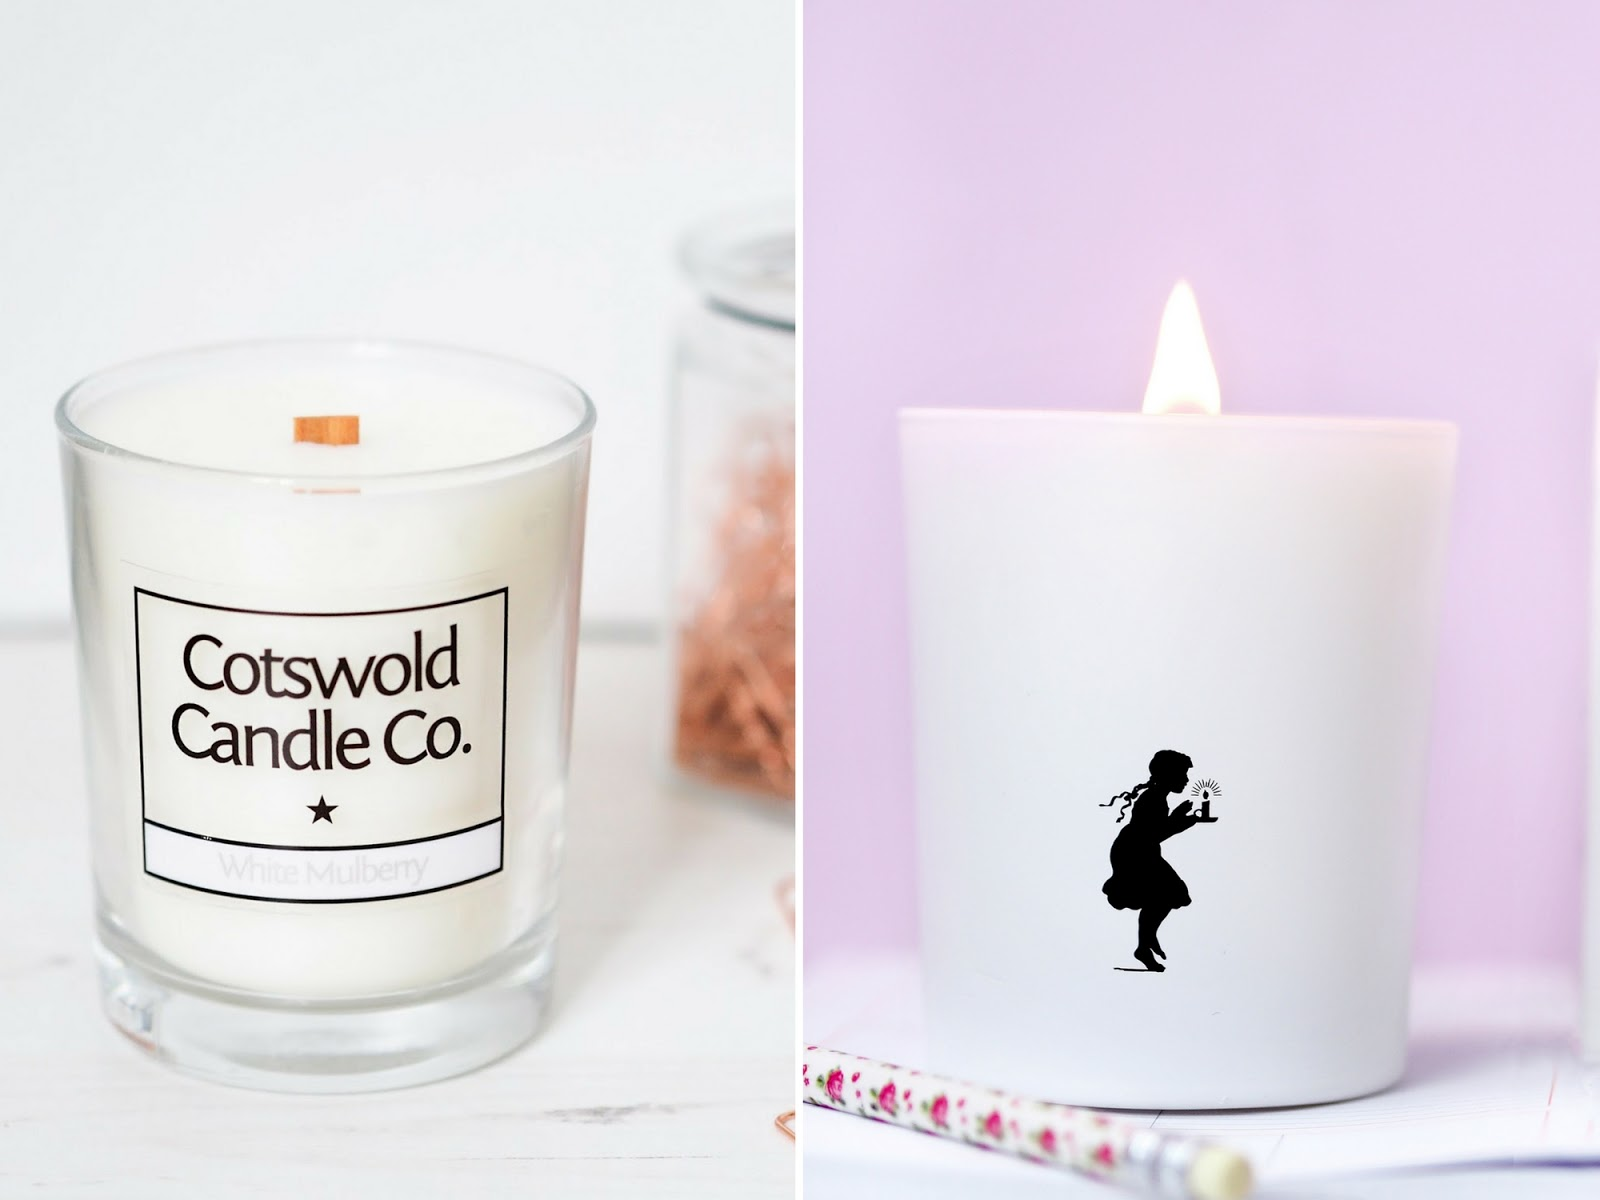 Cotswold Candle Co old vs new packaging